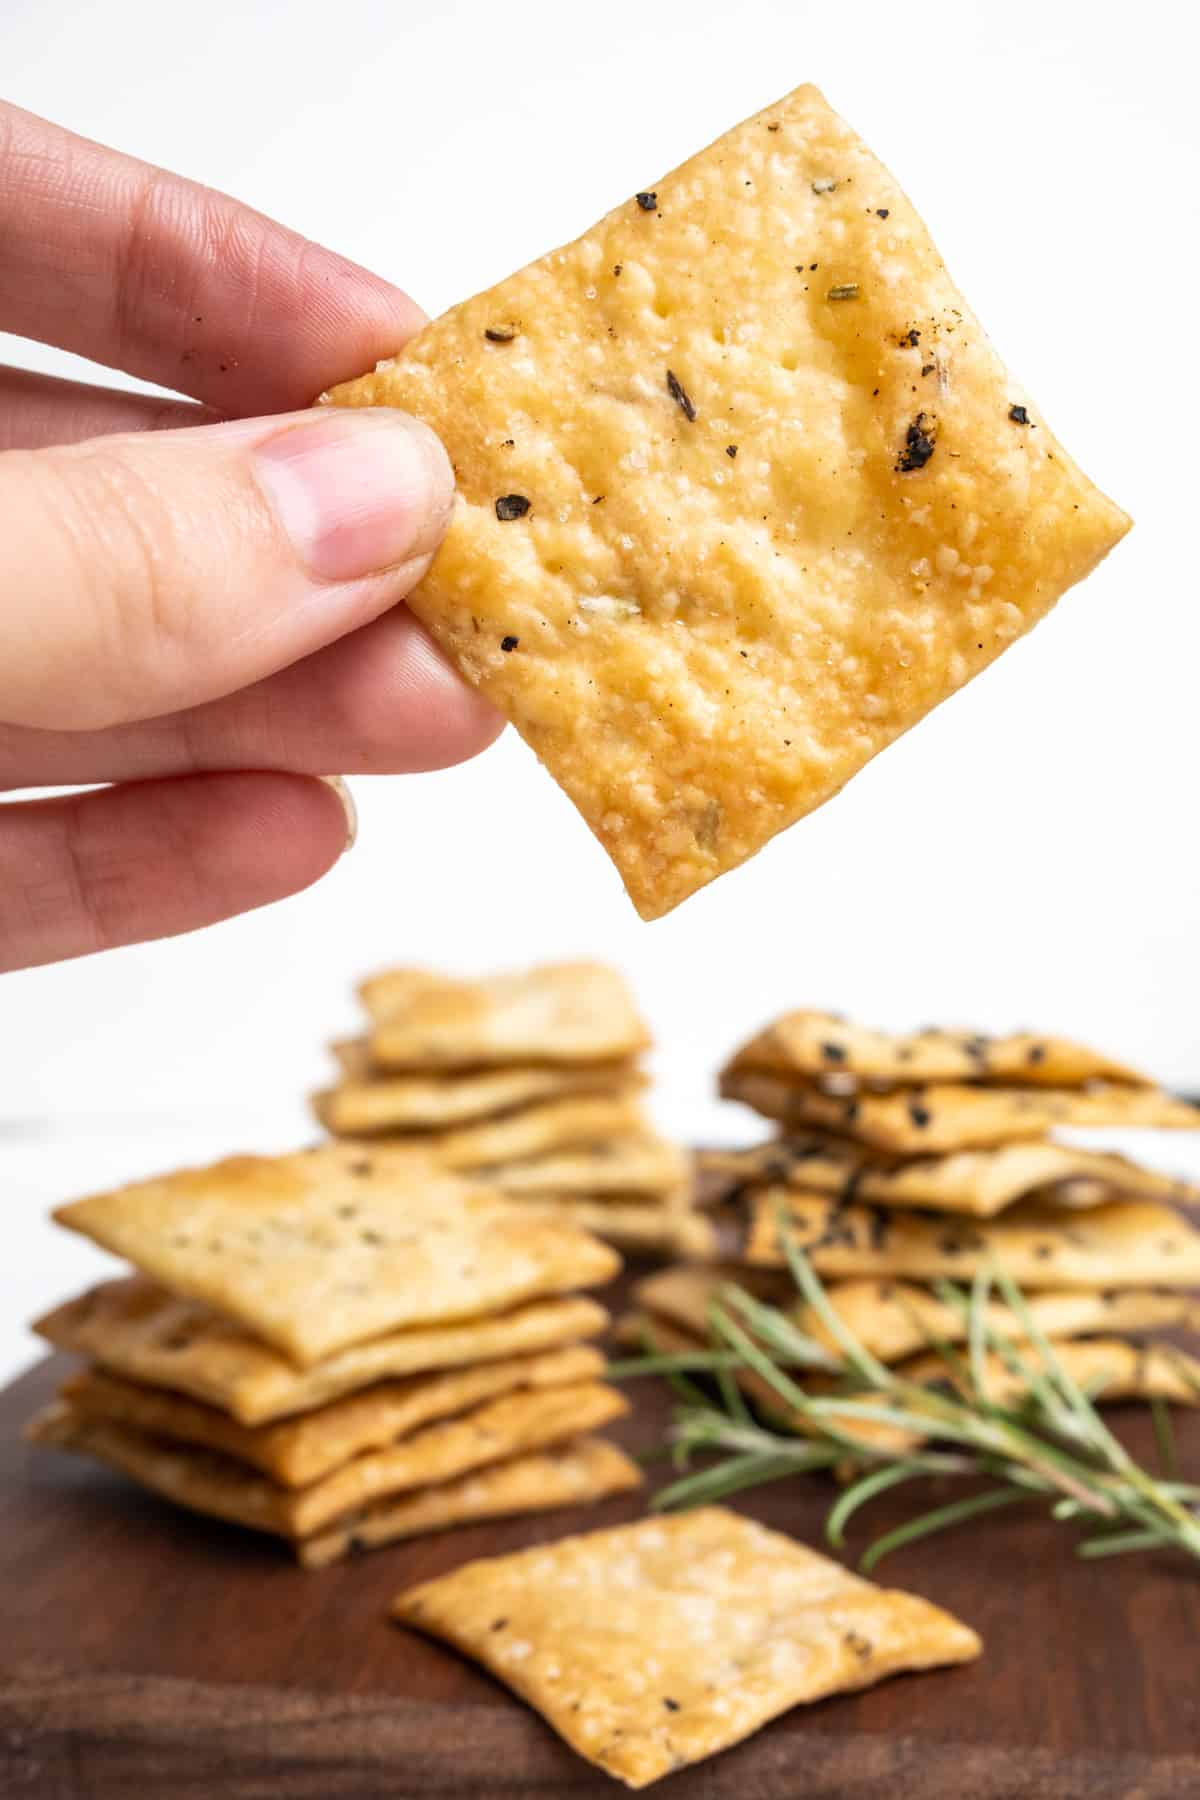 A hand holds up a golden brown cracker sprinkled with salt and pepper for a close up in front of a backdrop of more, stacked crackers.